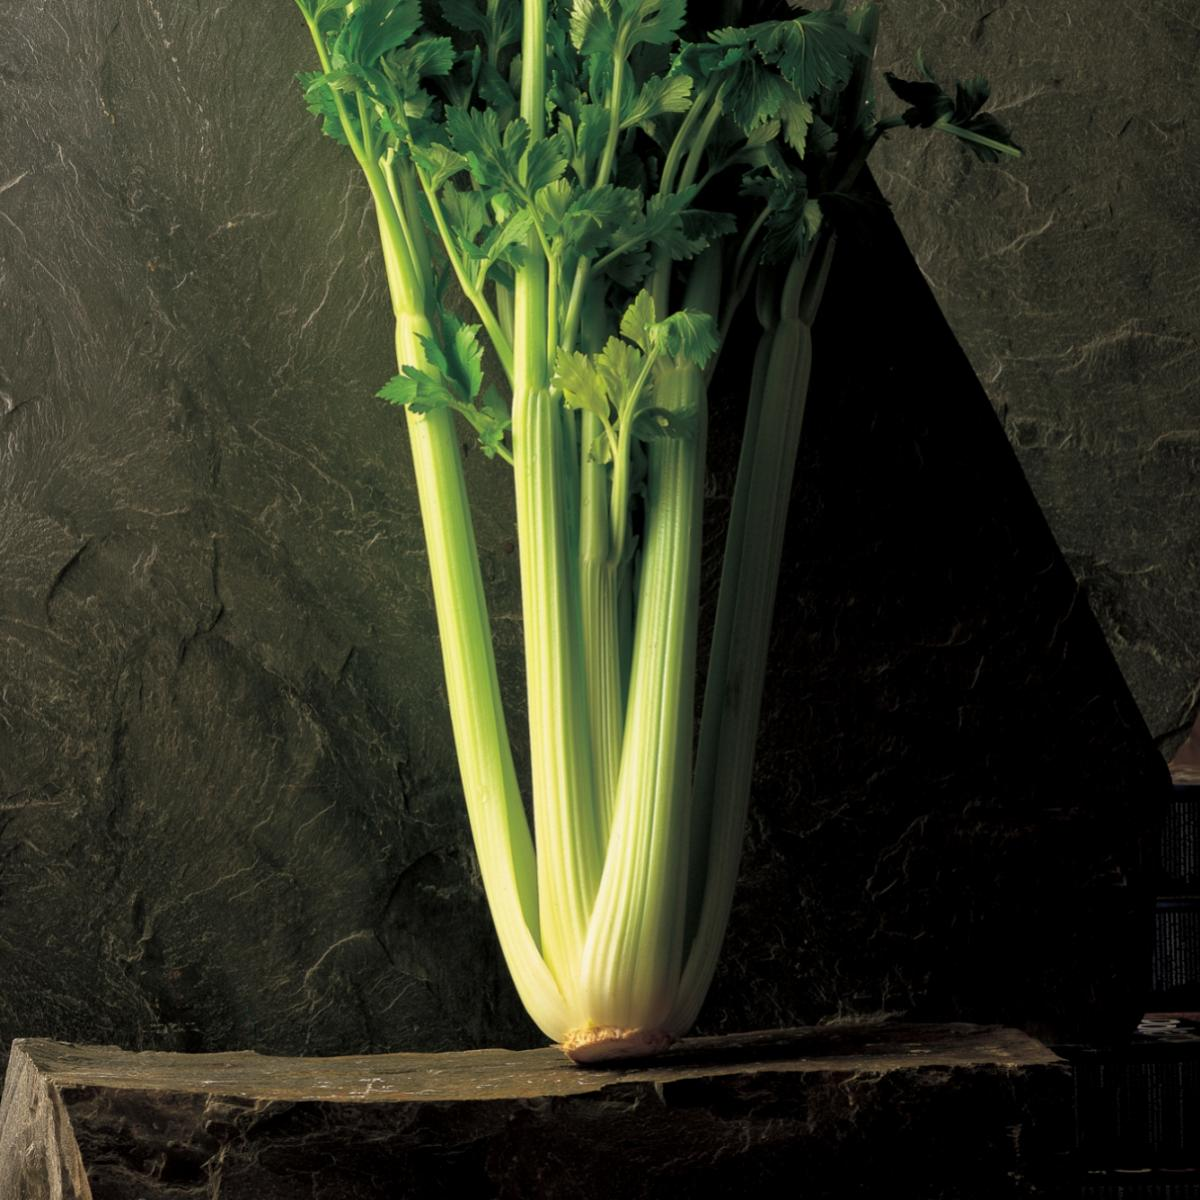 Ingredient soup celery